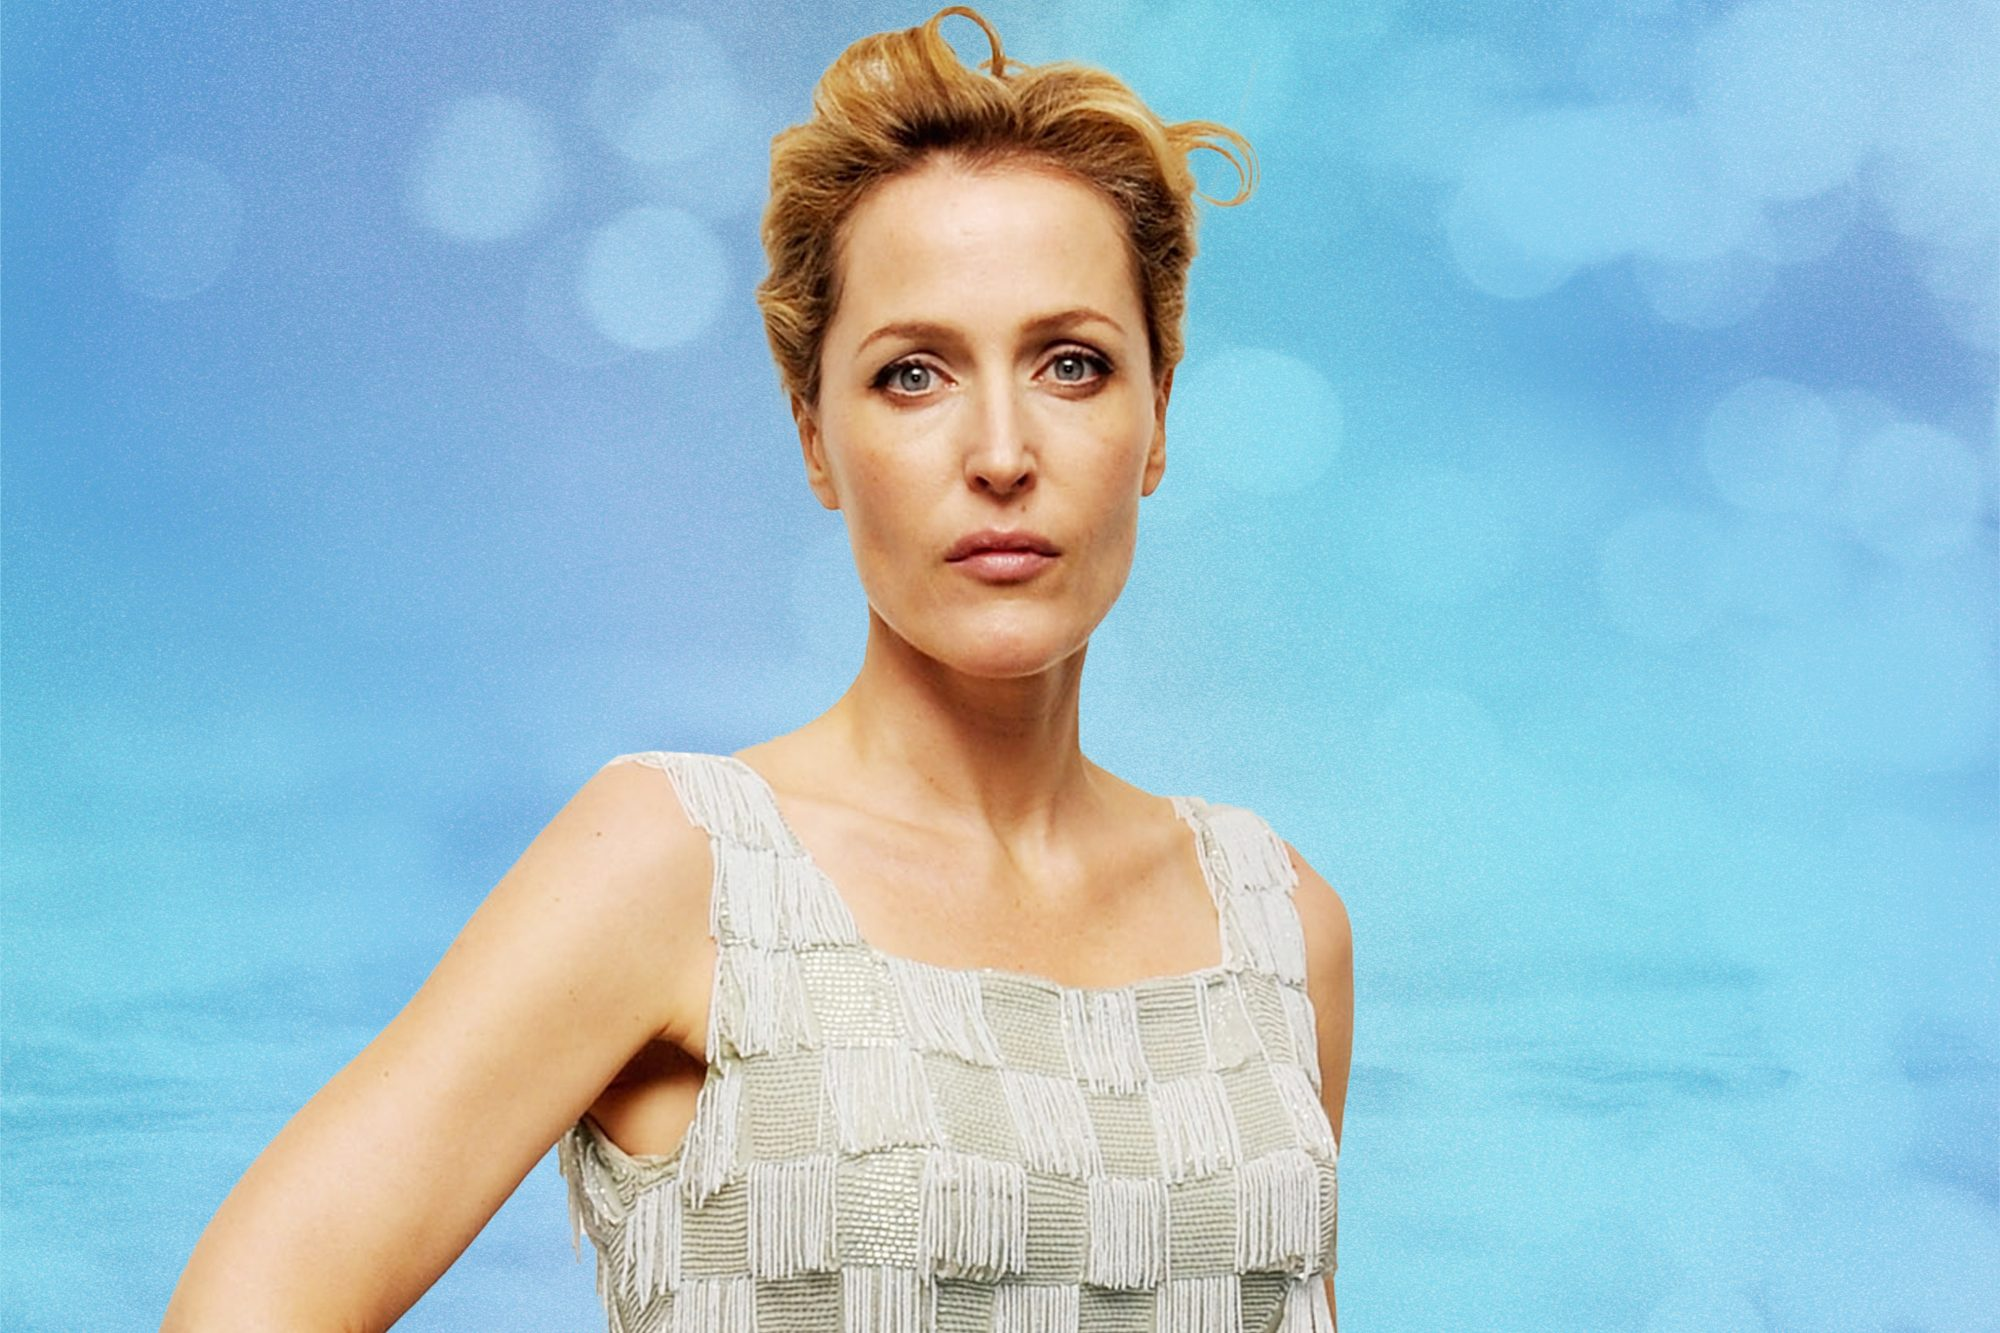 Gillian-Anderson-Swears-This-Gel-Moisturizer-Hydrates-Her-Skin-Better-Than-Fancy-Creams-GettyImages-129184194